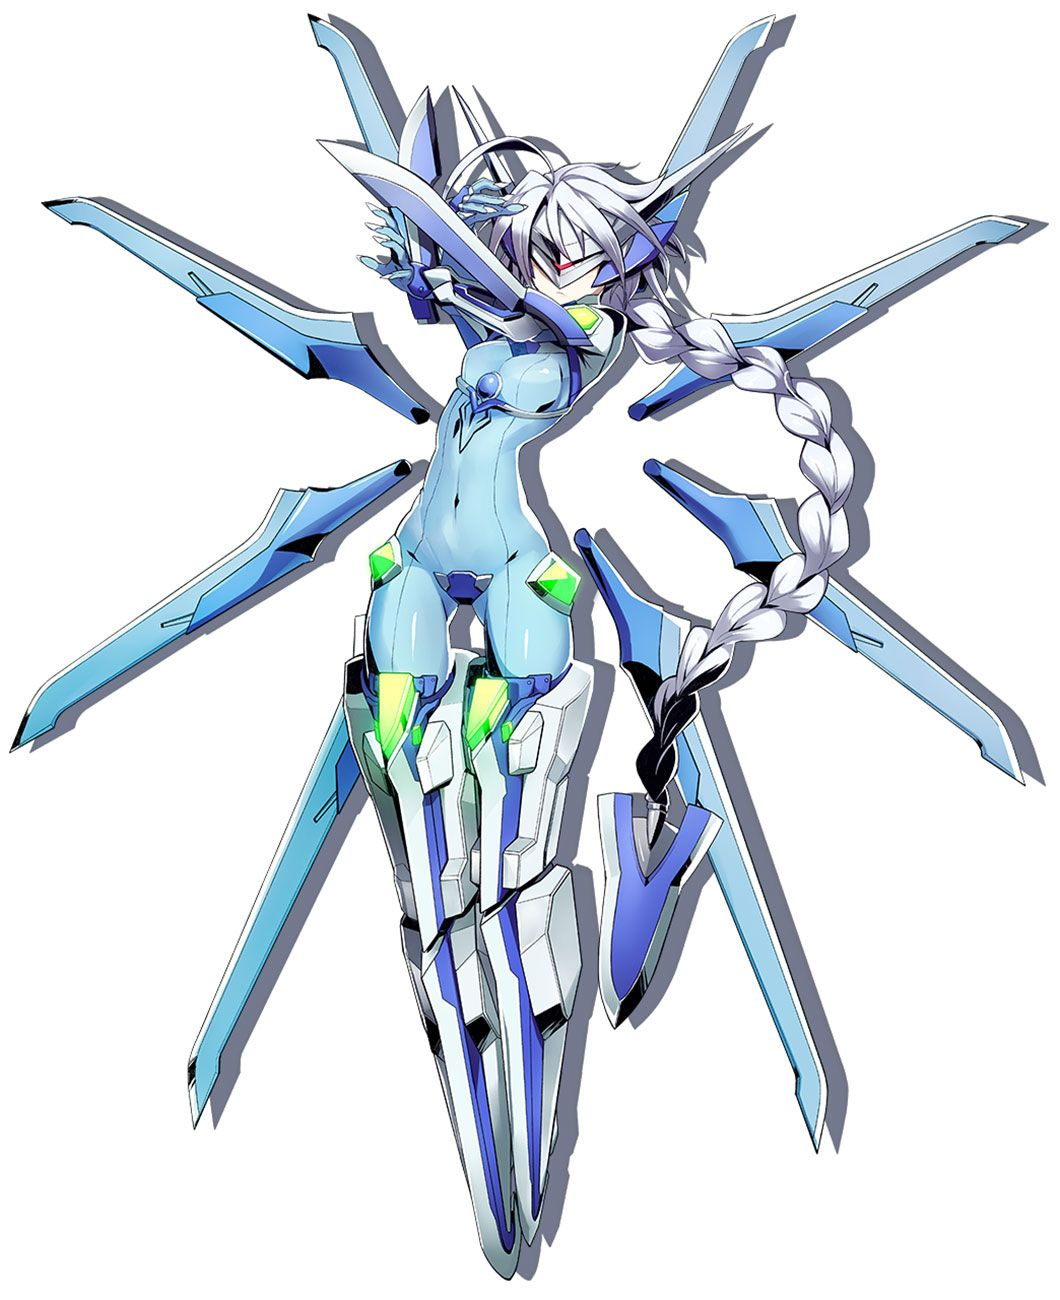 nu from blazblue: central fiction | anime girls | pinterest